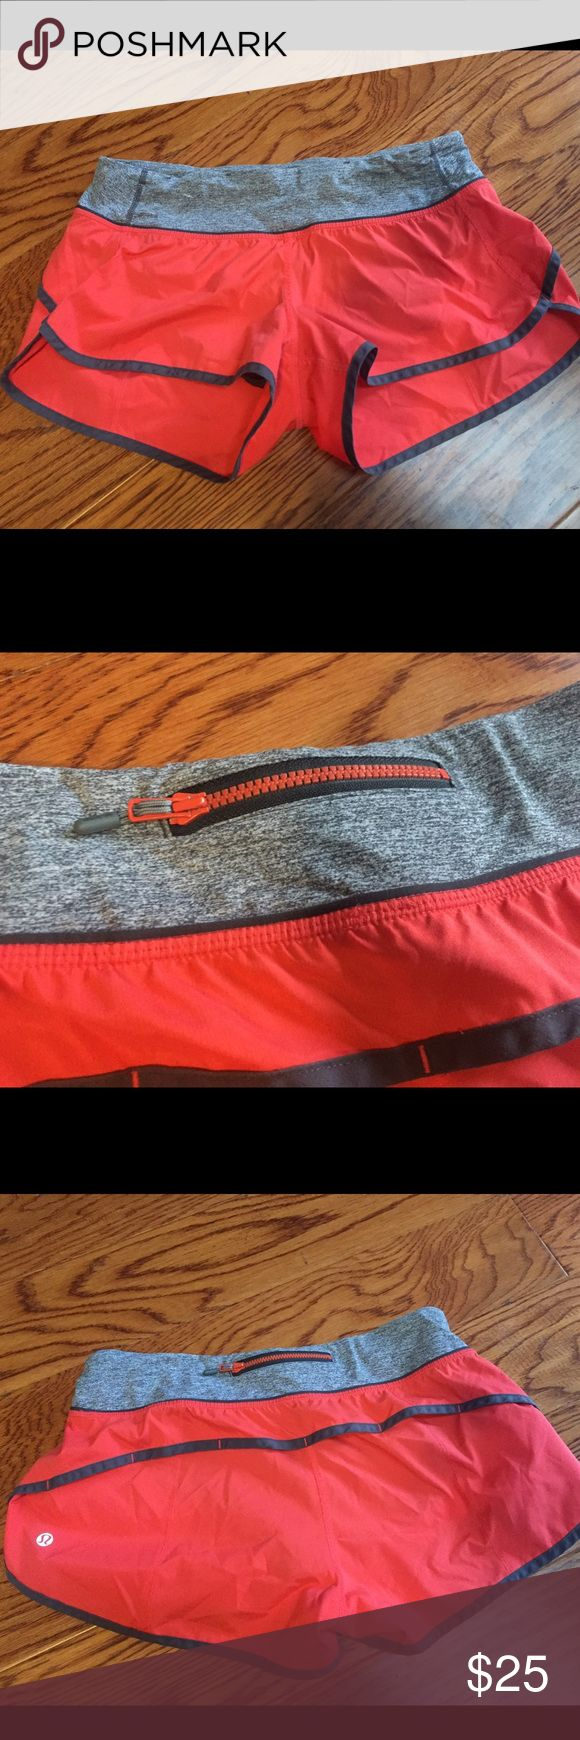 Lululemon speed shorts size 6 GUC Smoke and pet free home. Discount of 20% if 2 or more items are purchased lululemon athletica Shorts